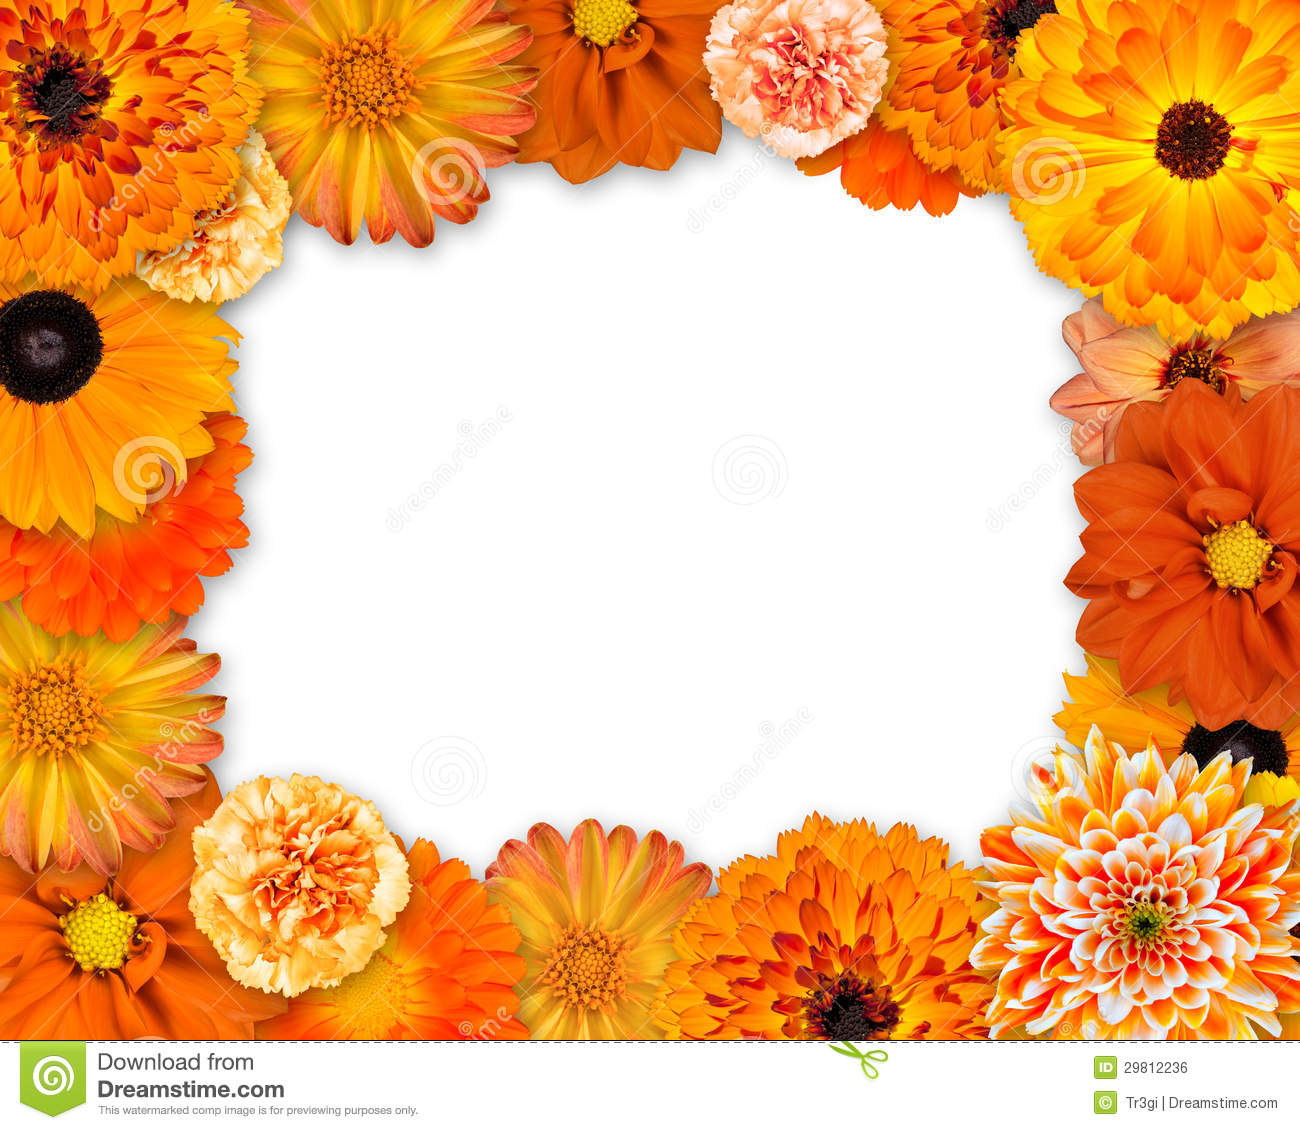 Flower Frame With Orange Flowers On White Royalty Free ... White Daisy Flowers Clipart